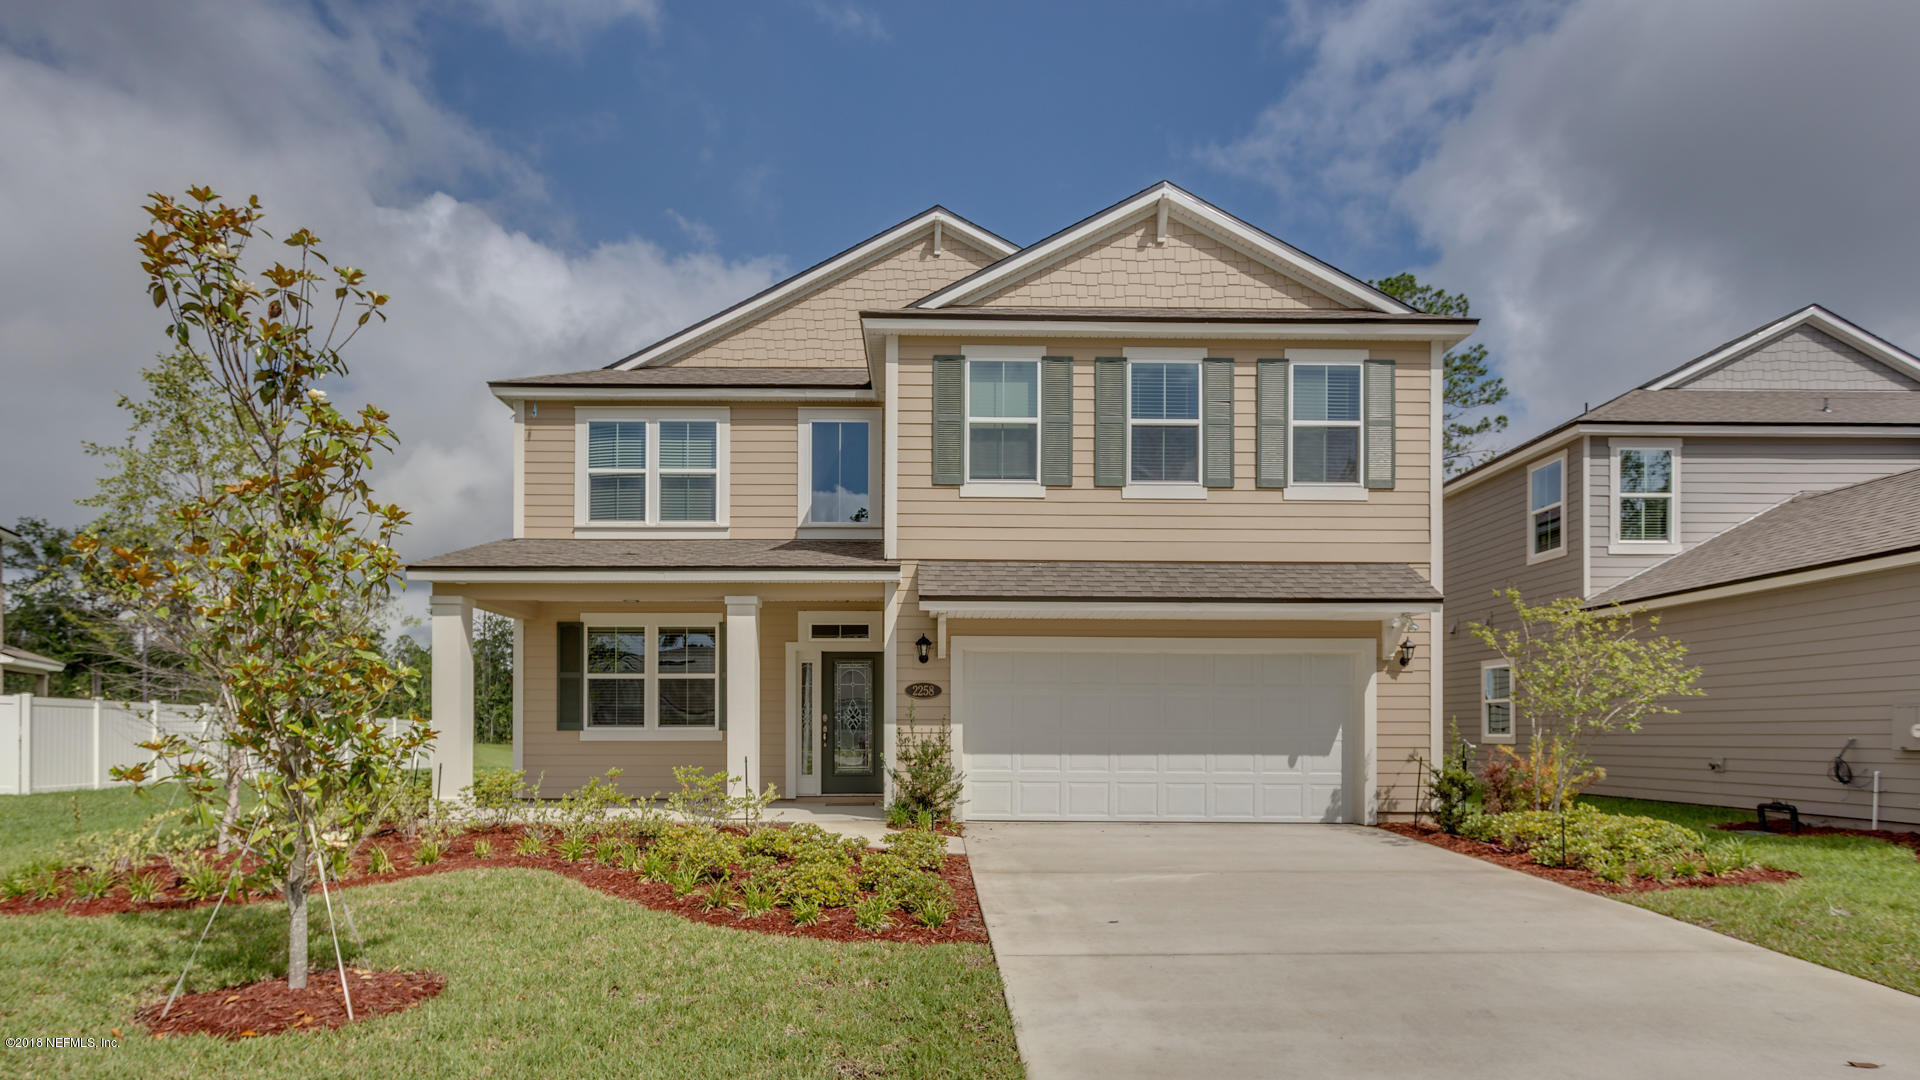 2258 EAGLE PERCH, FLEMING ISLAND, FLORIDA 32003, 5 Bedrooms Bedrooms, ,3 BathroomsBathrooms,Residential - single family,For sale,EAGLE PERCH,873708